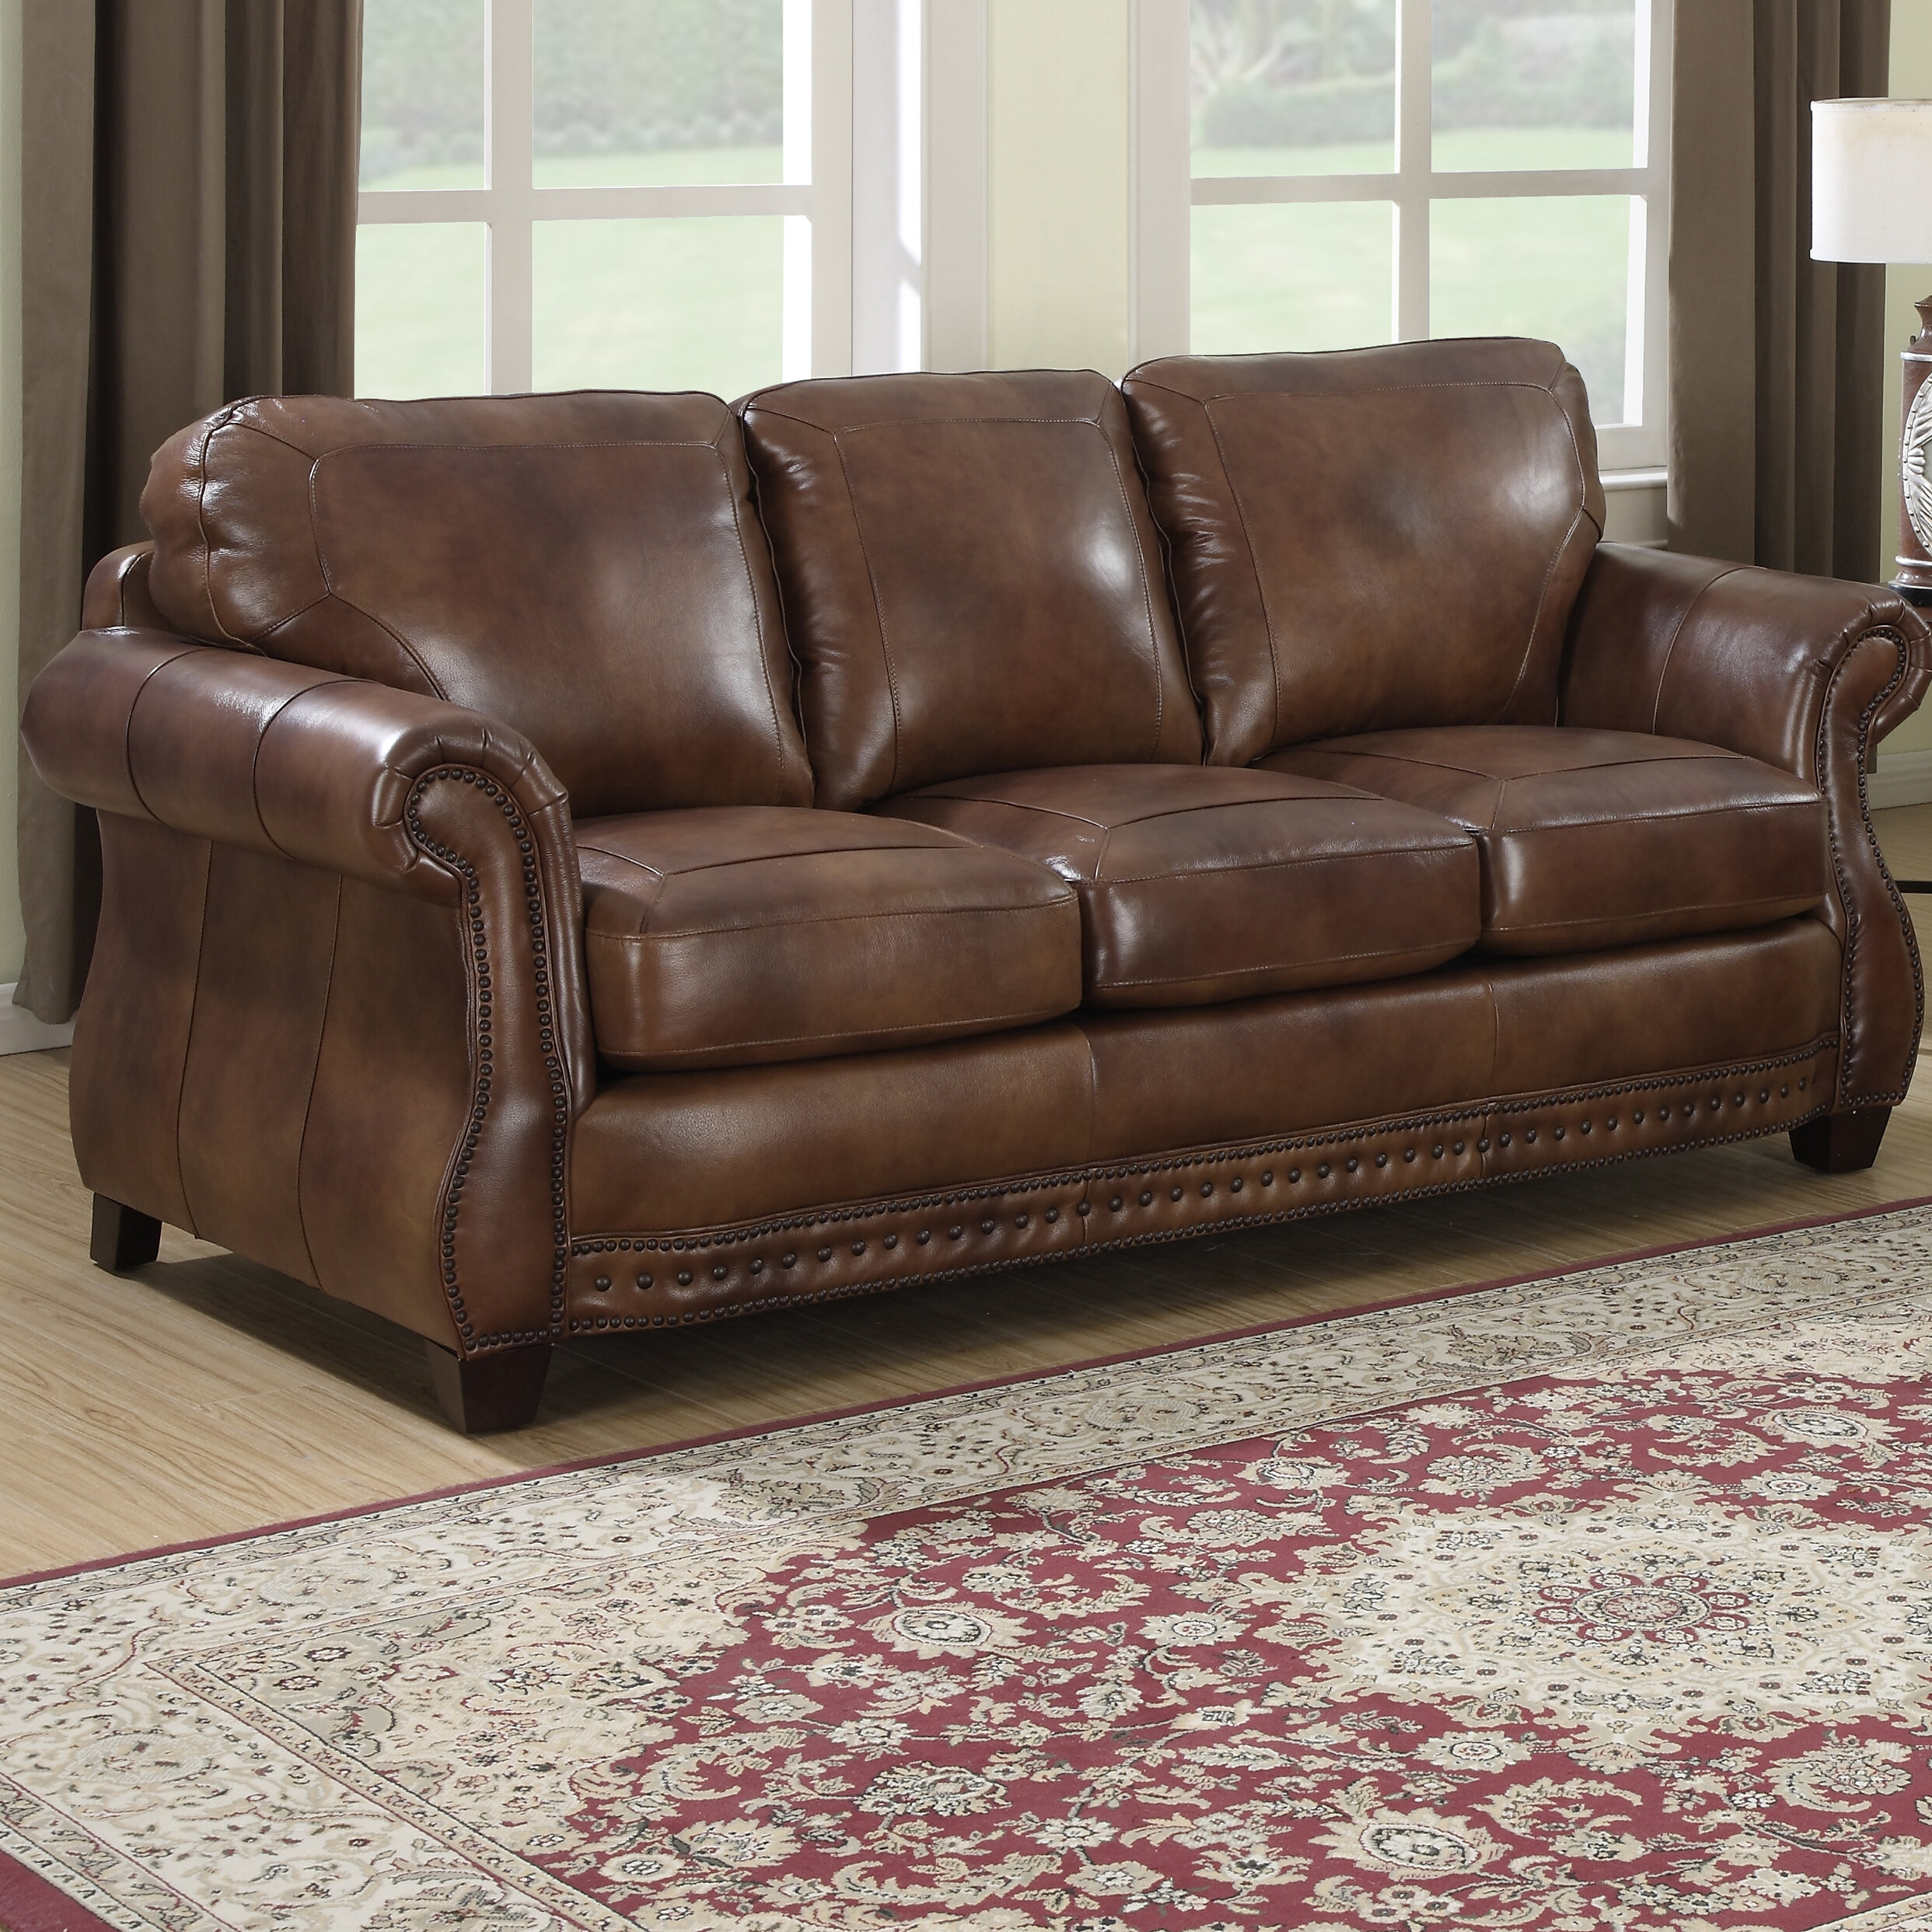 Attirant Darby Home Co Beglin Cognac Leather Sofa | Wayfair